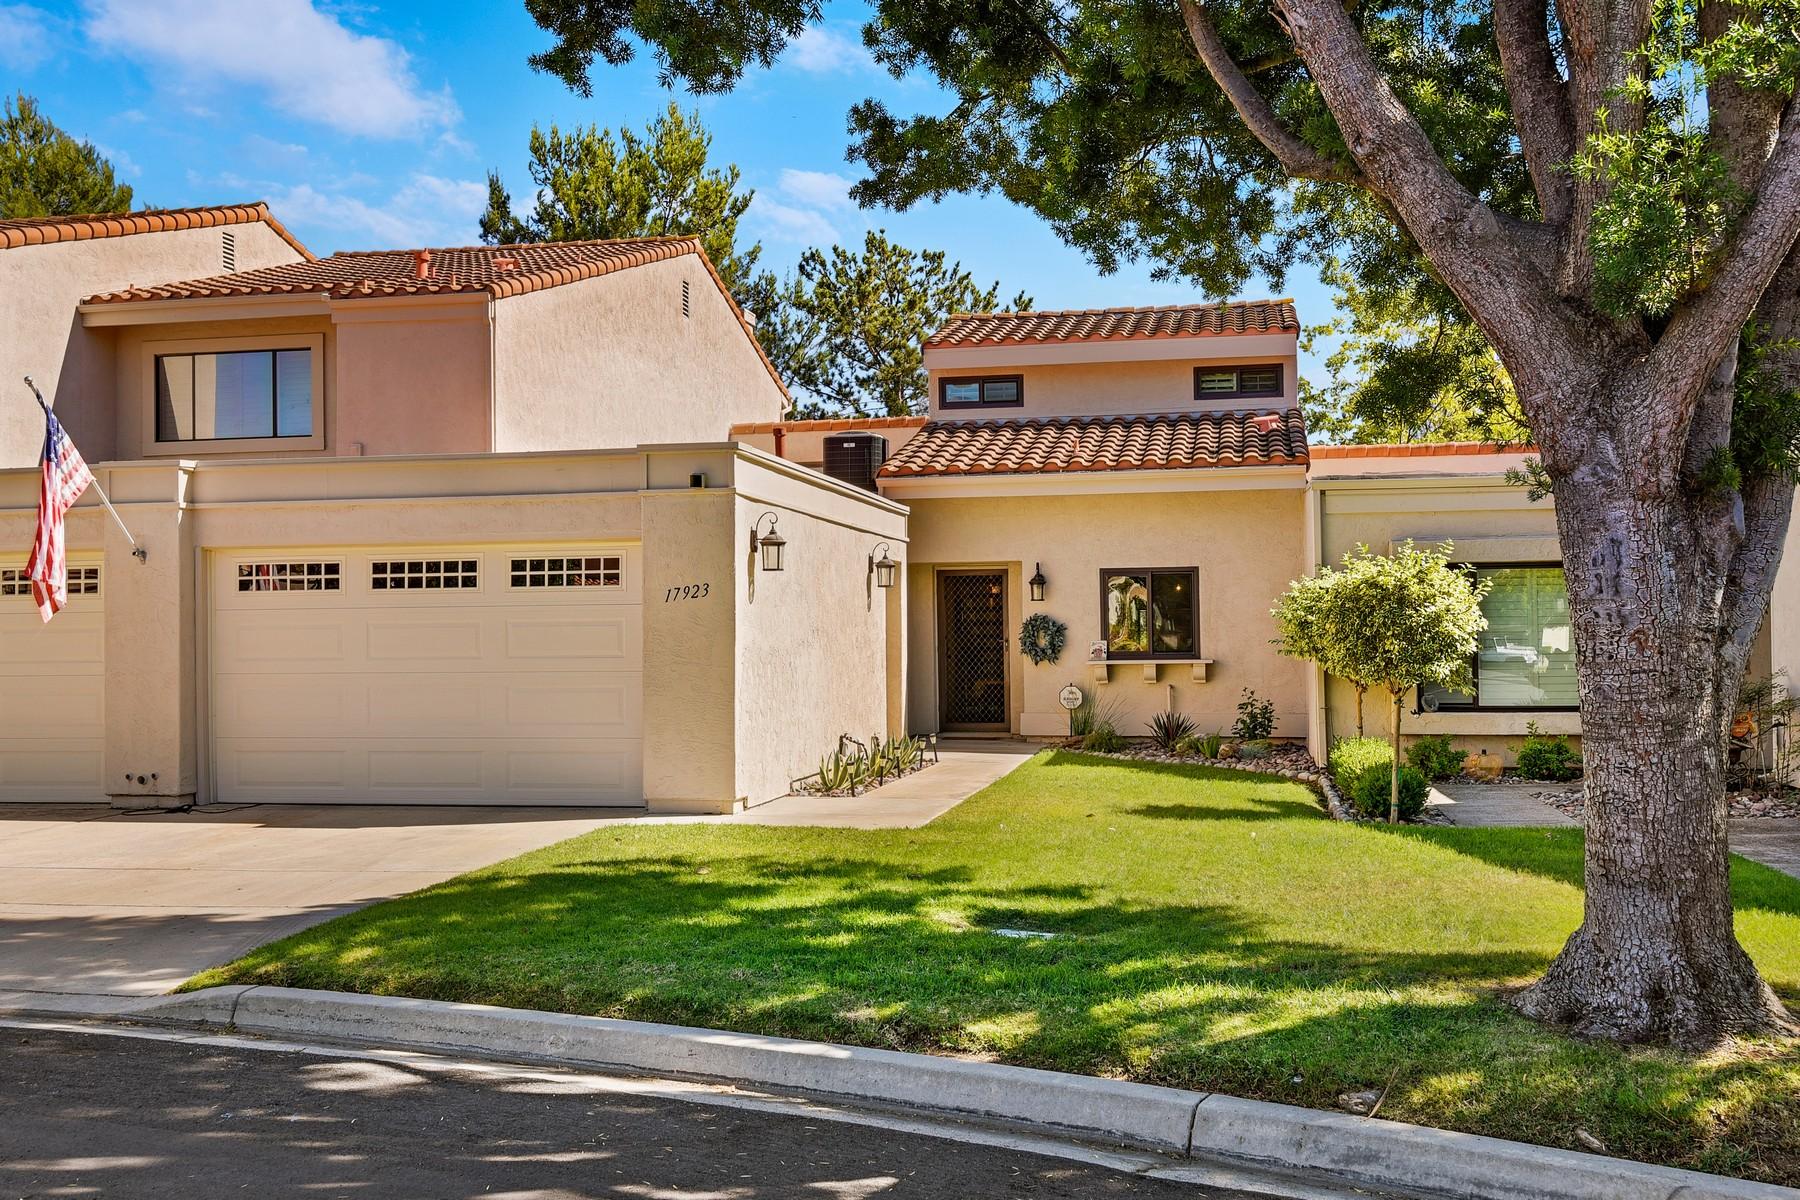 Single Family Homes for Sale at 17923 Valle de Lobo Drive Poway, California 92064 United States